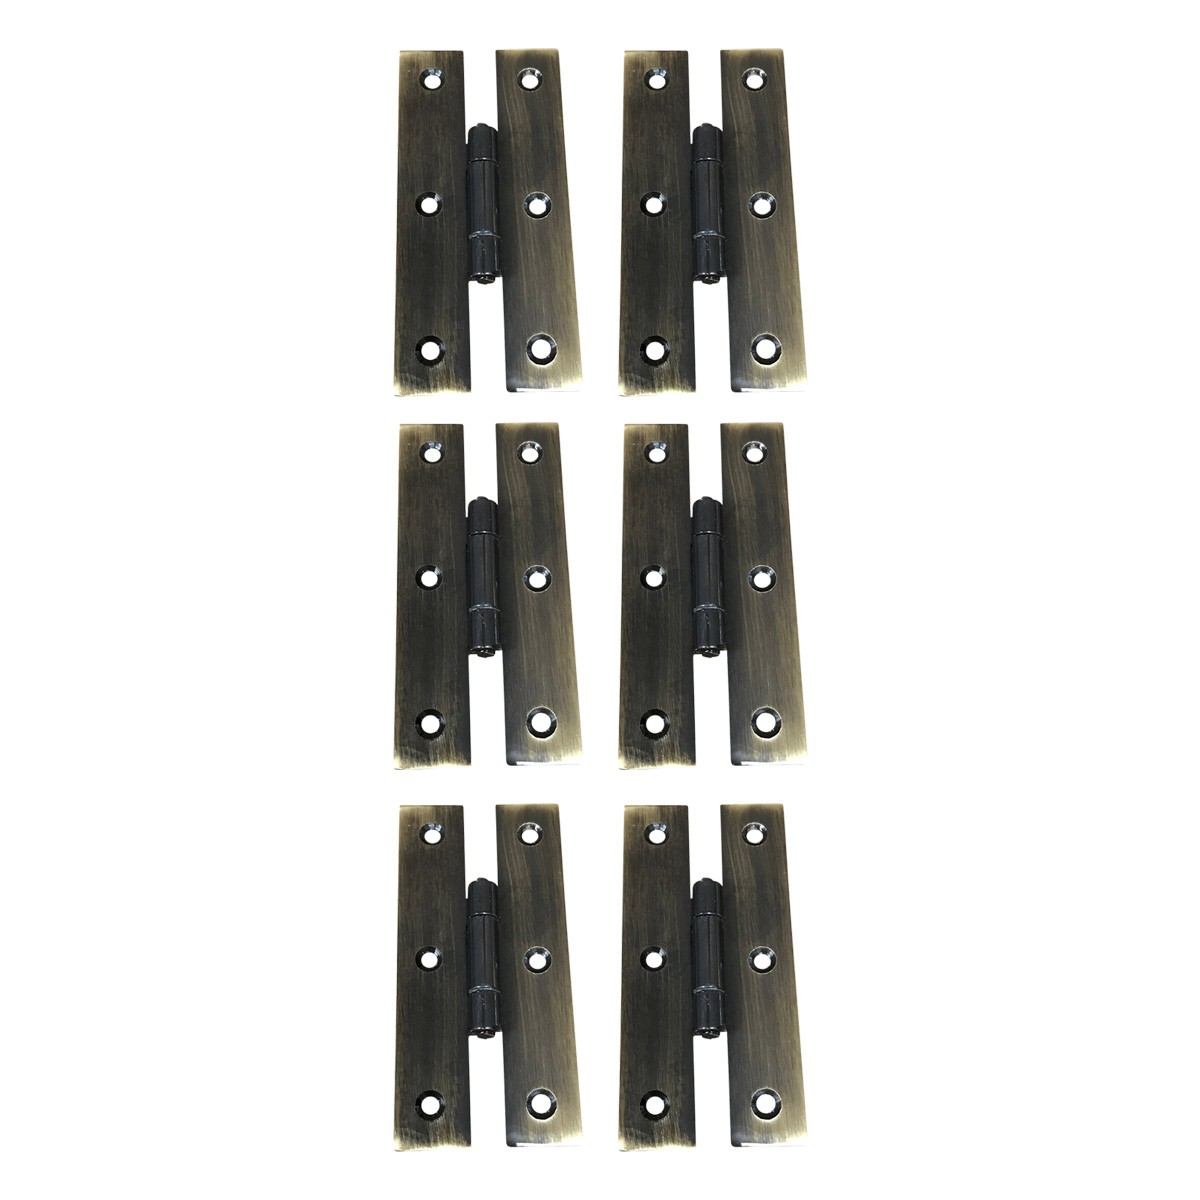 Oil Rubbed Bronze Cabinet Flush H Hinge 3 Inches Pack of 6 | Renovator's Supply